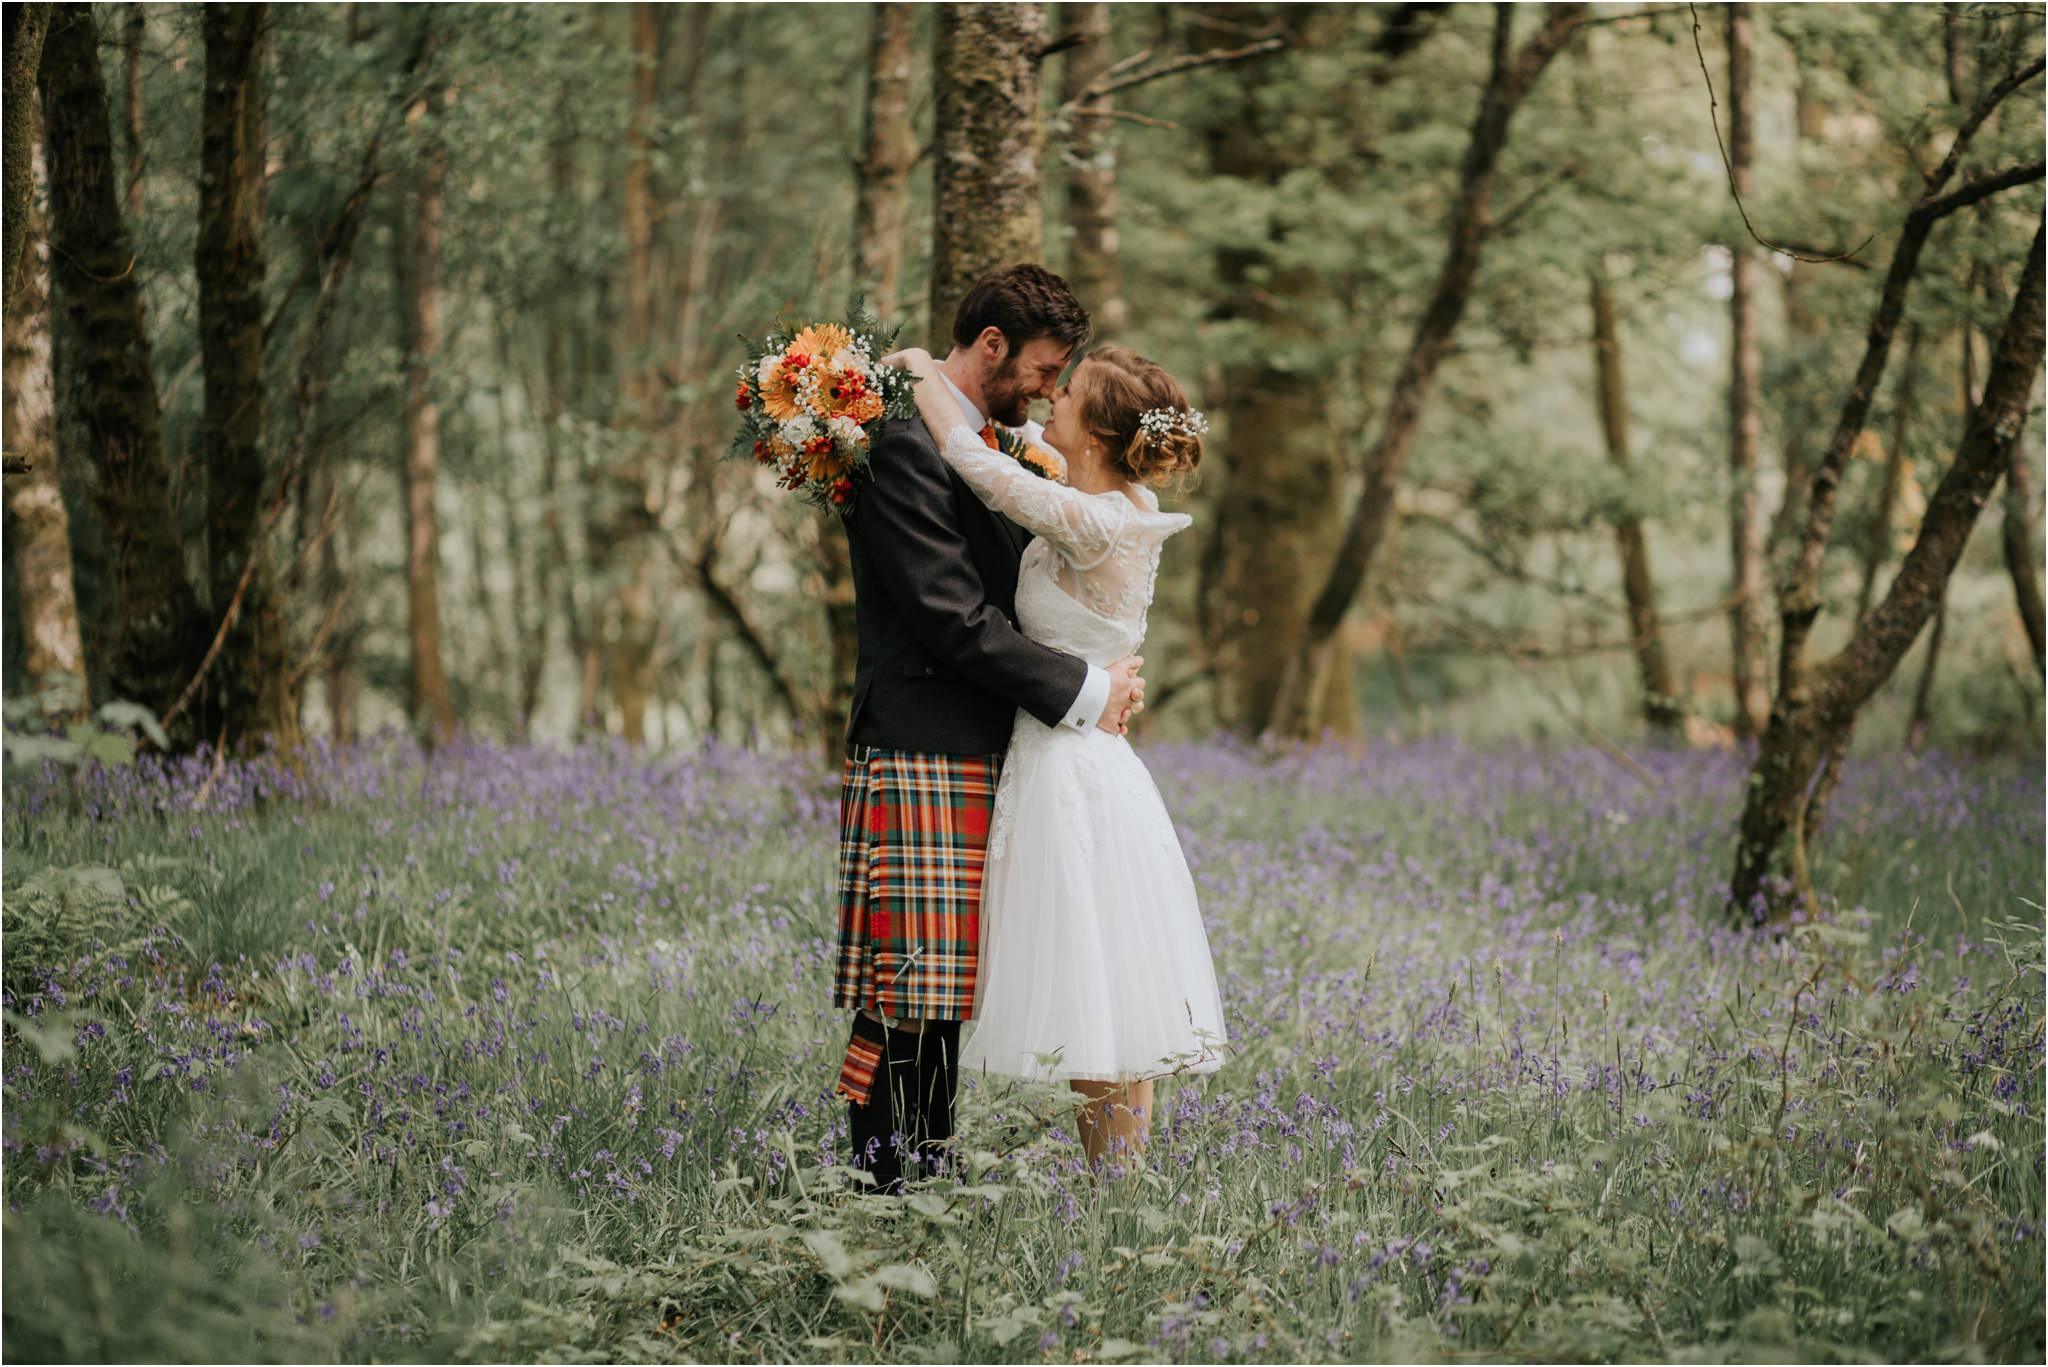 Photography 78 - Glasgow Wedding Photographer - Fraser Thirza - Killearn Village Hall - Three Sisters Bake Wedding_0099.jpg